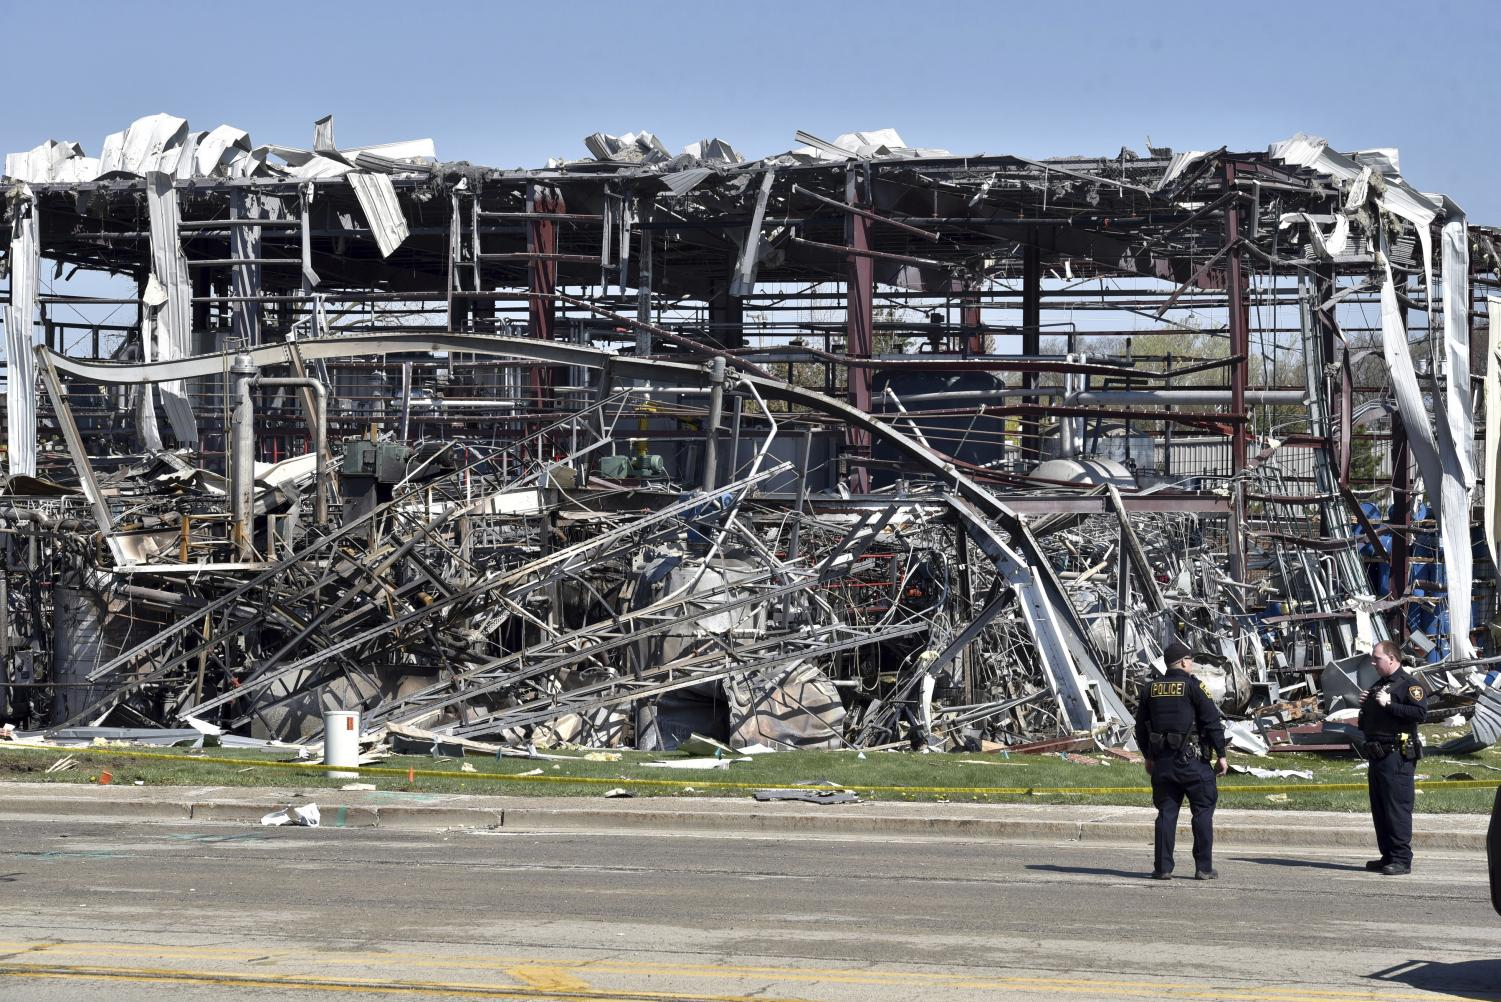 Emergency personnel work at the scene of an explosion at AB Specialty Silicones on Sunset Ave. and Northwestern Ave. on the border between Gurnee, Ill., and Waukegan on Saturday, May 4, 2019. The explosion happened Friday night.